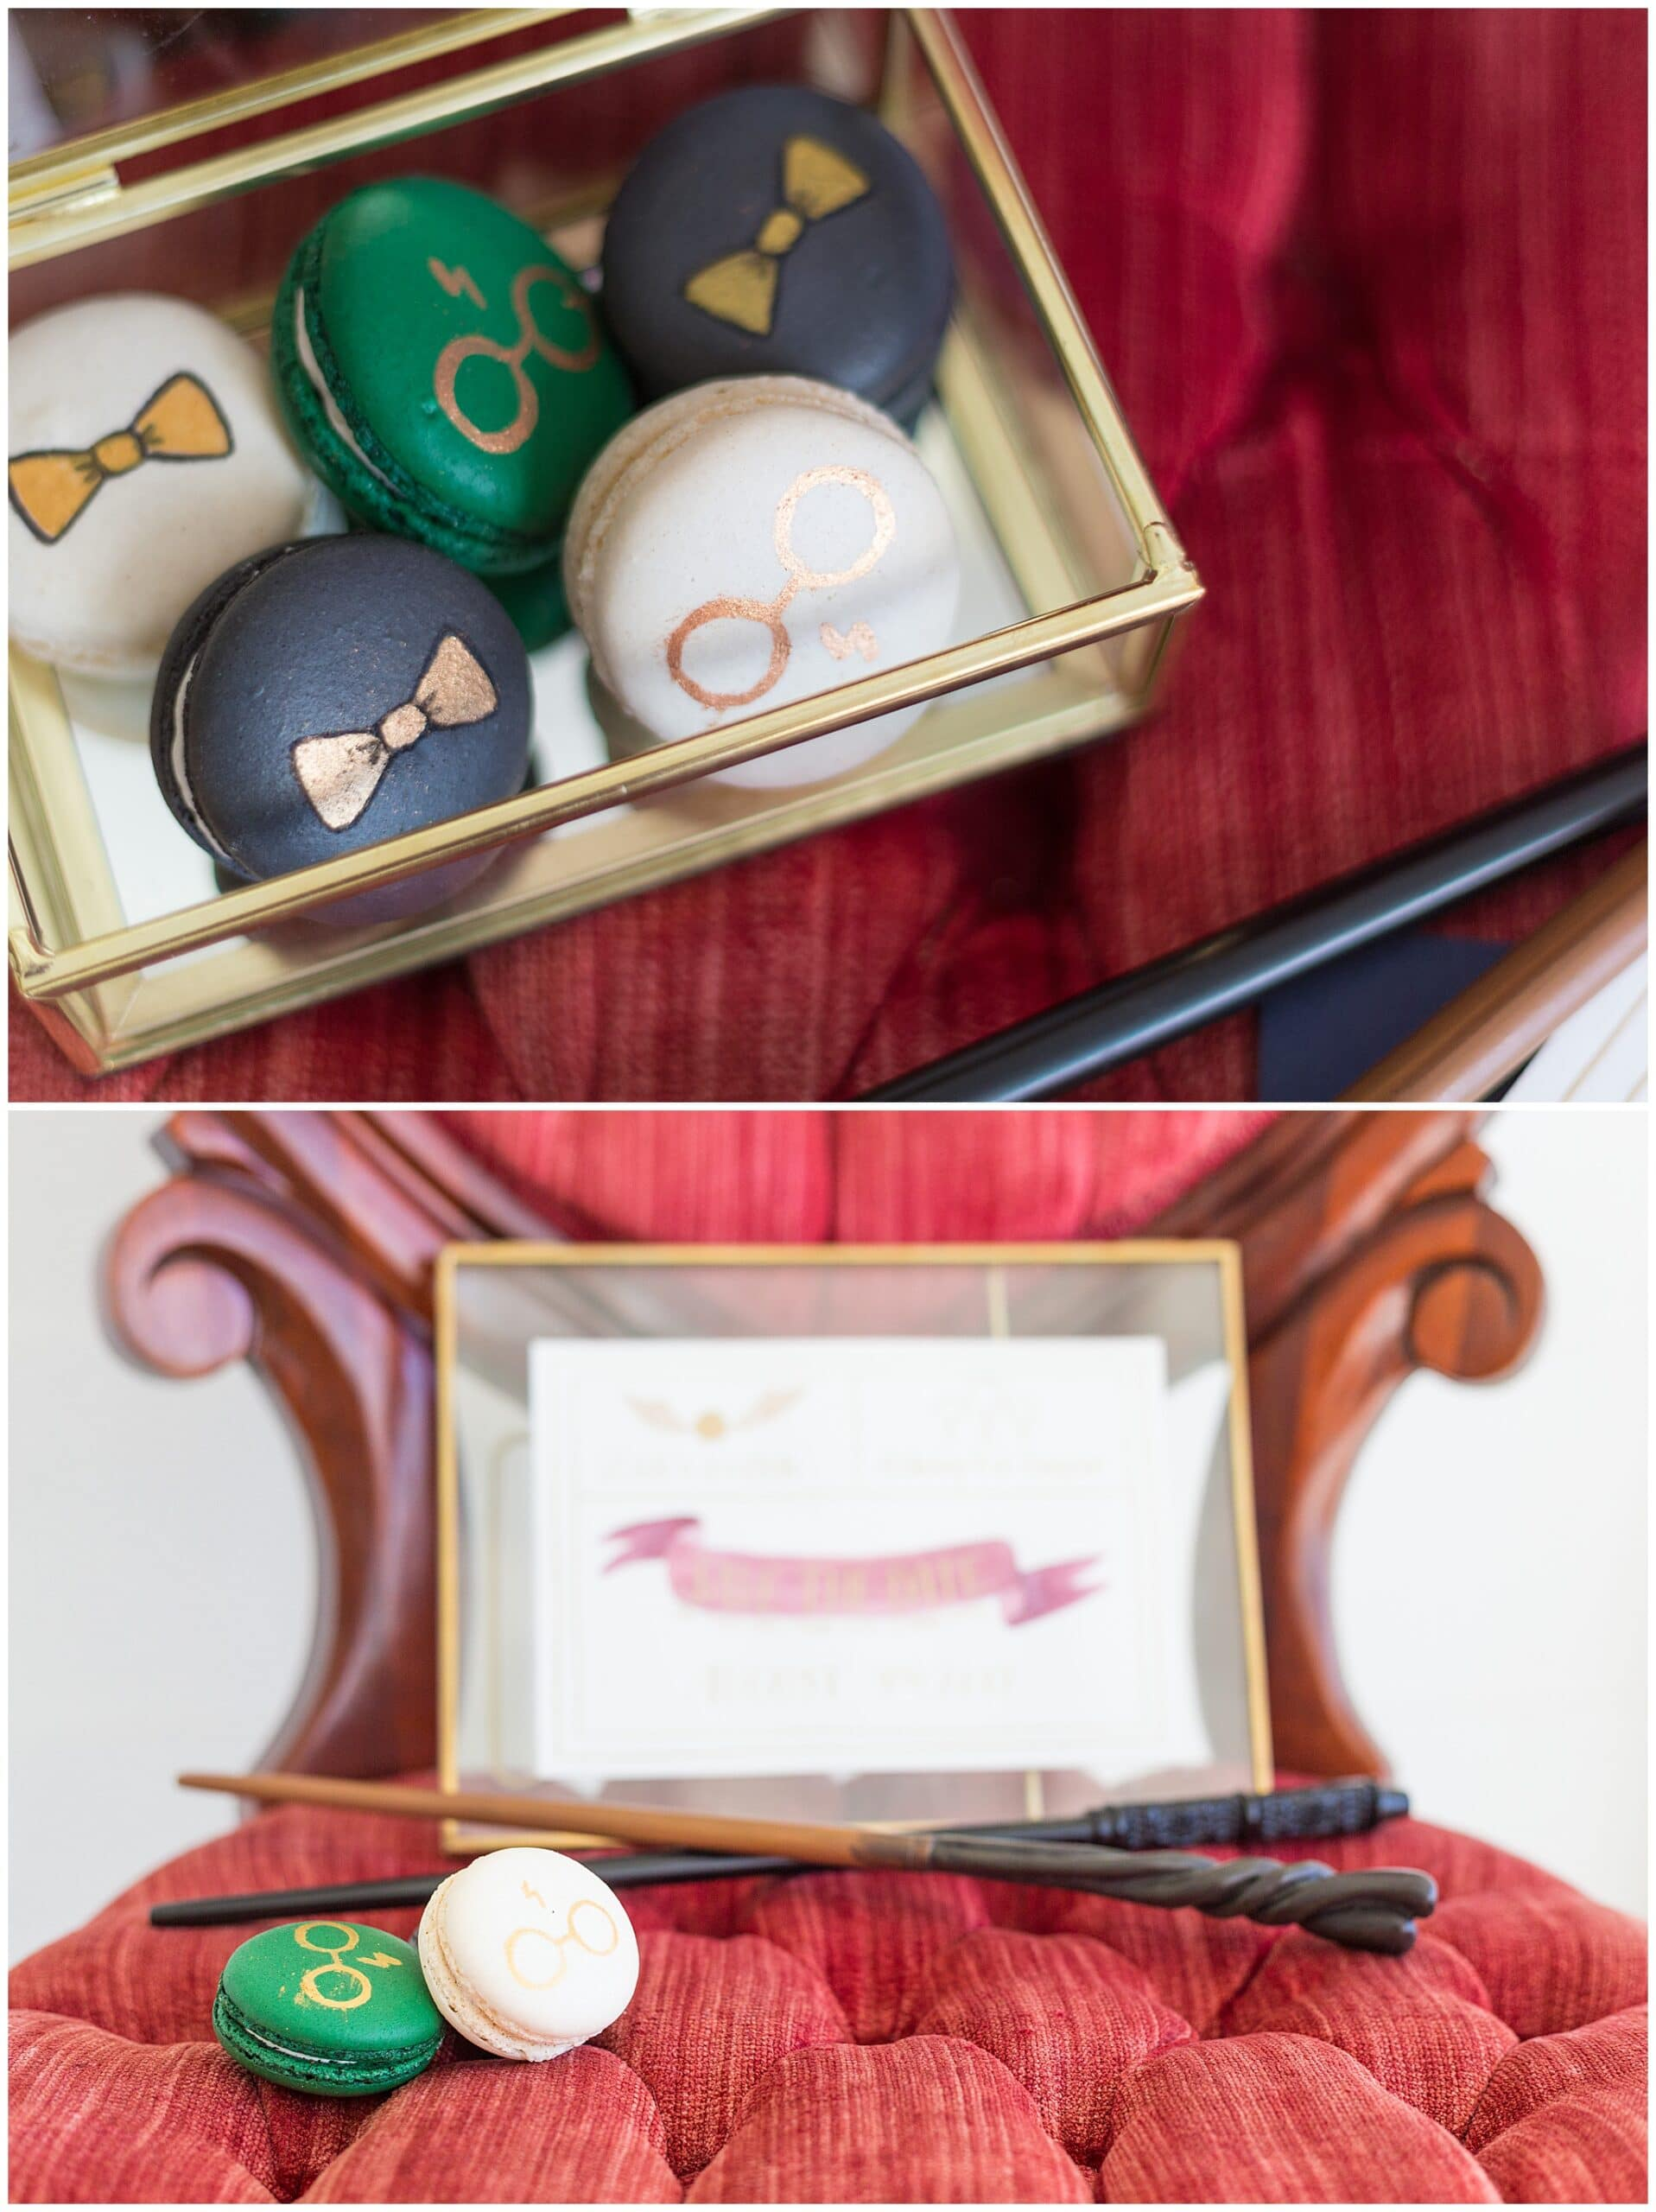 Harry Potter macrons made by Wink by Erica at the Grand Texana in Houston Texas photographed by Swish and Click Photography